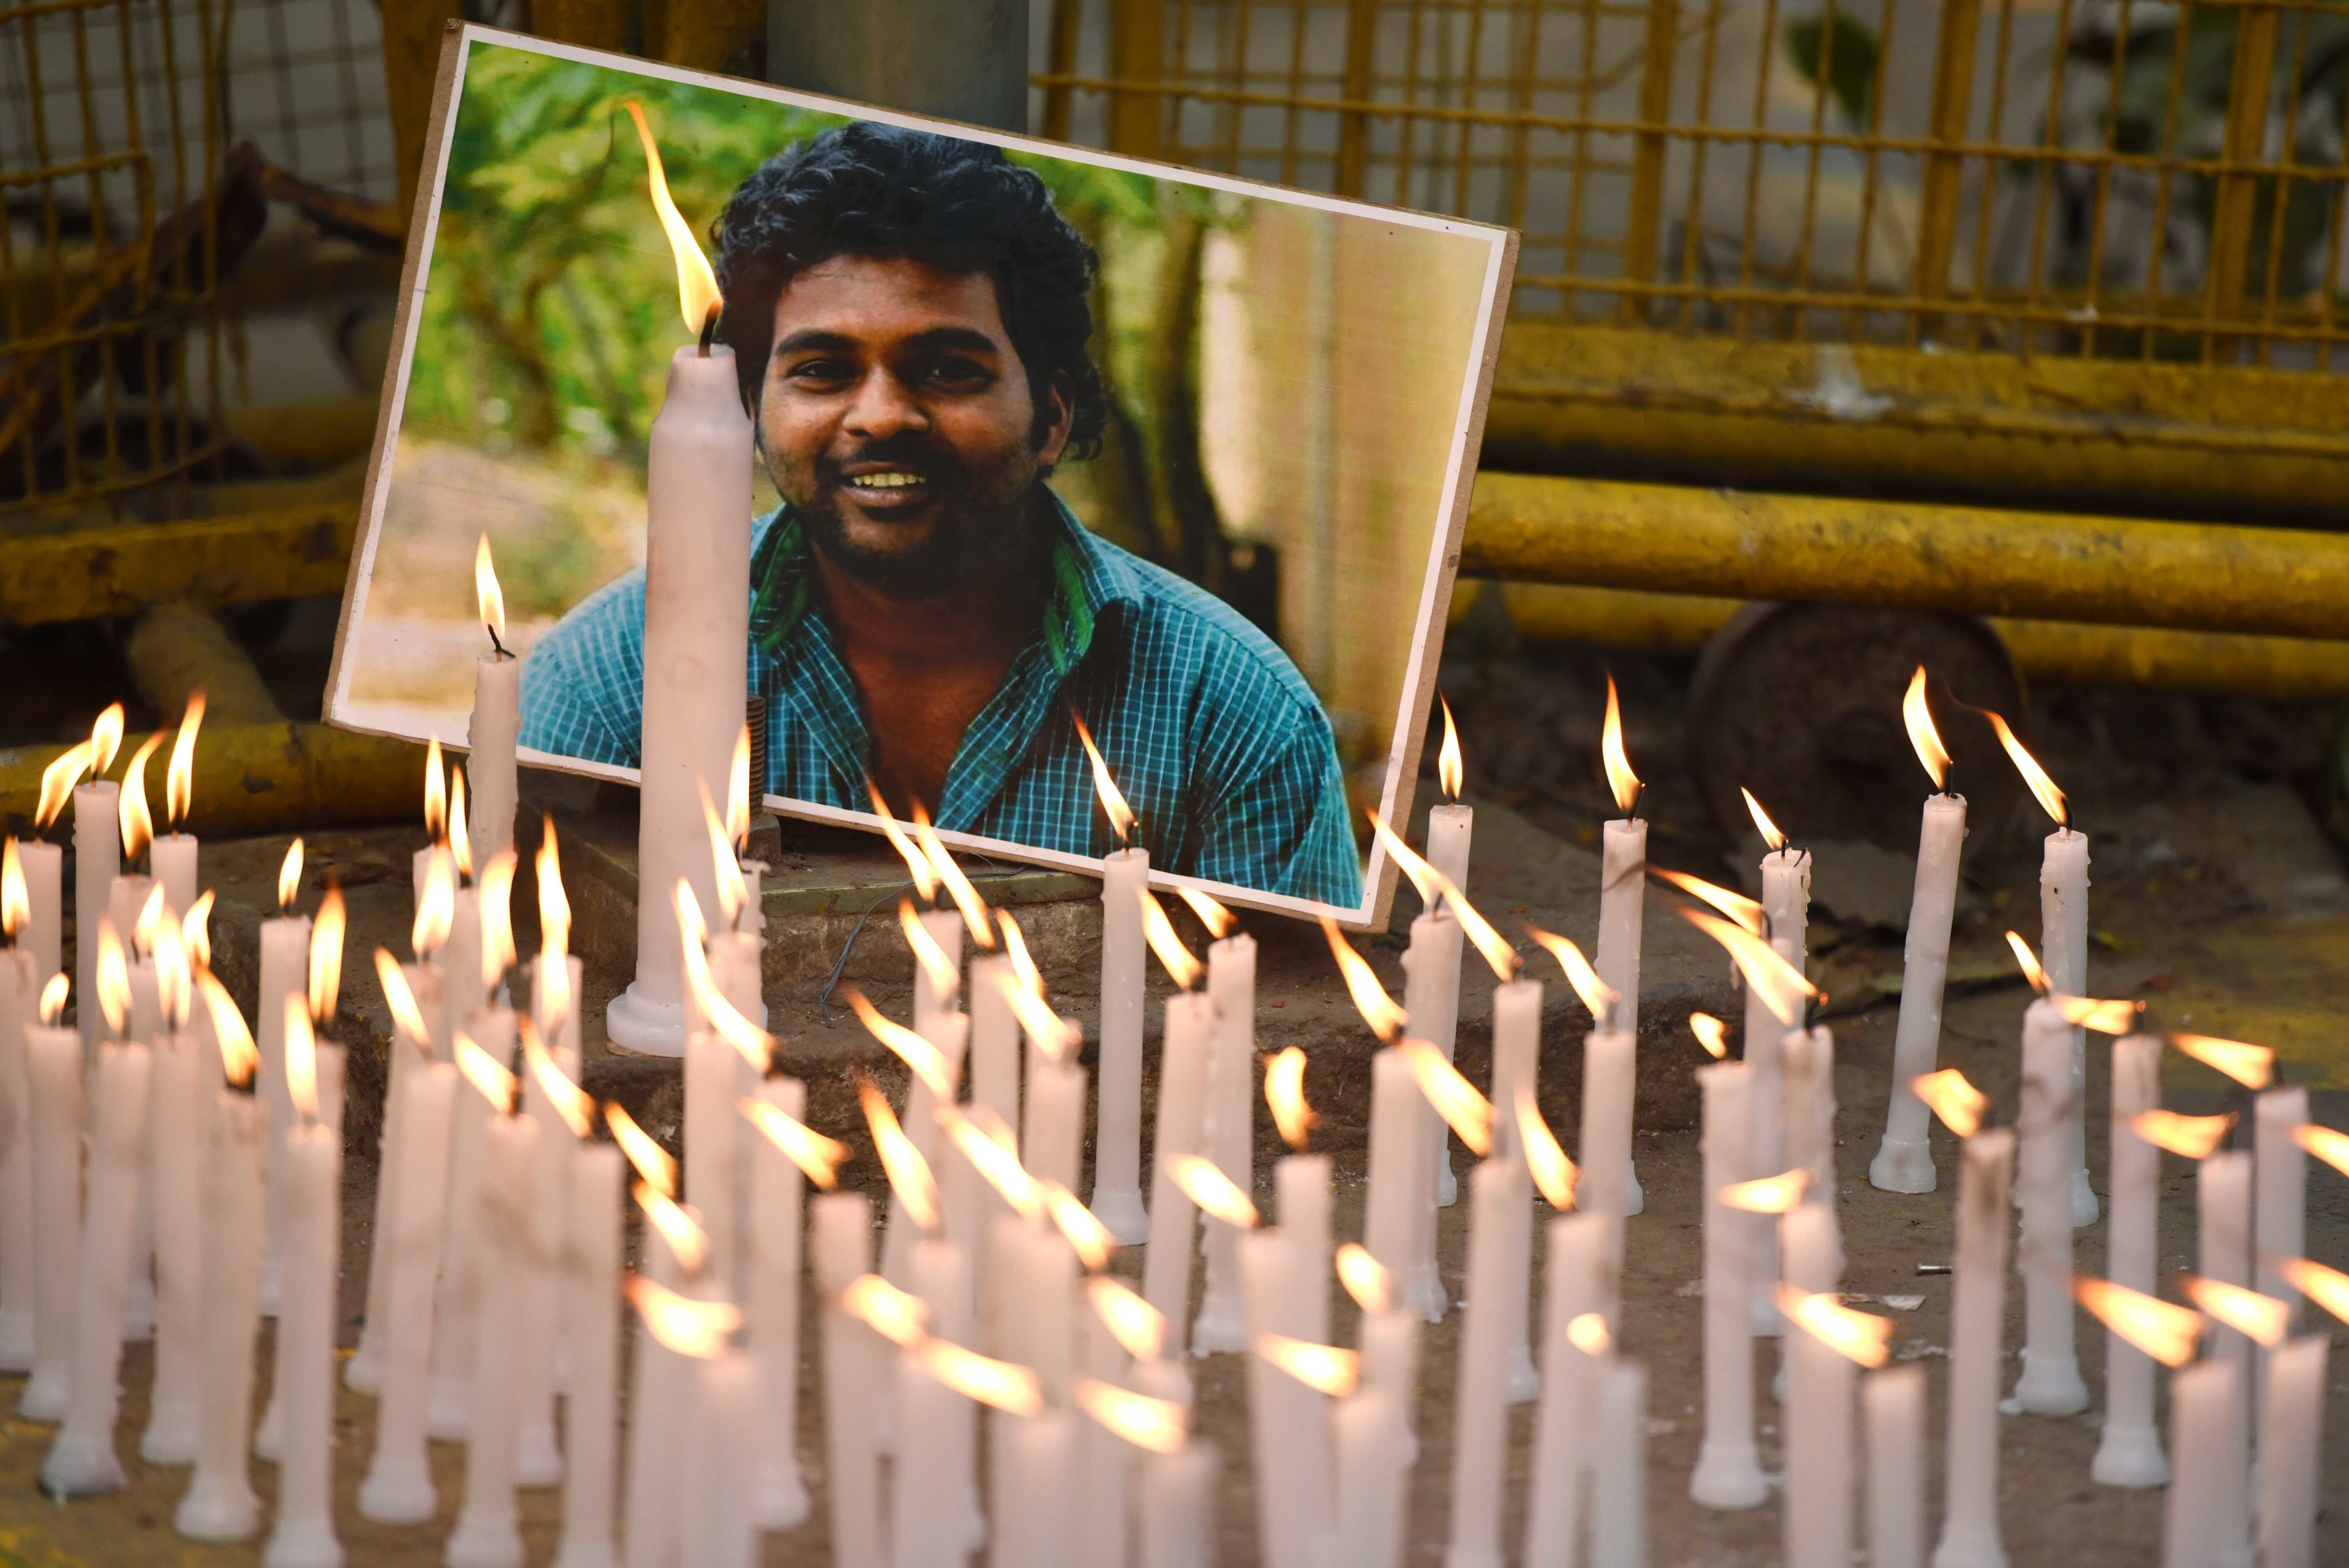 On Rohith Vemula's Death Anniversary, Hyderabad University Gives Nod For Students To Pay